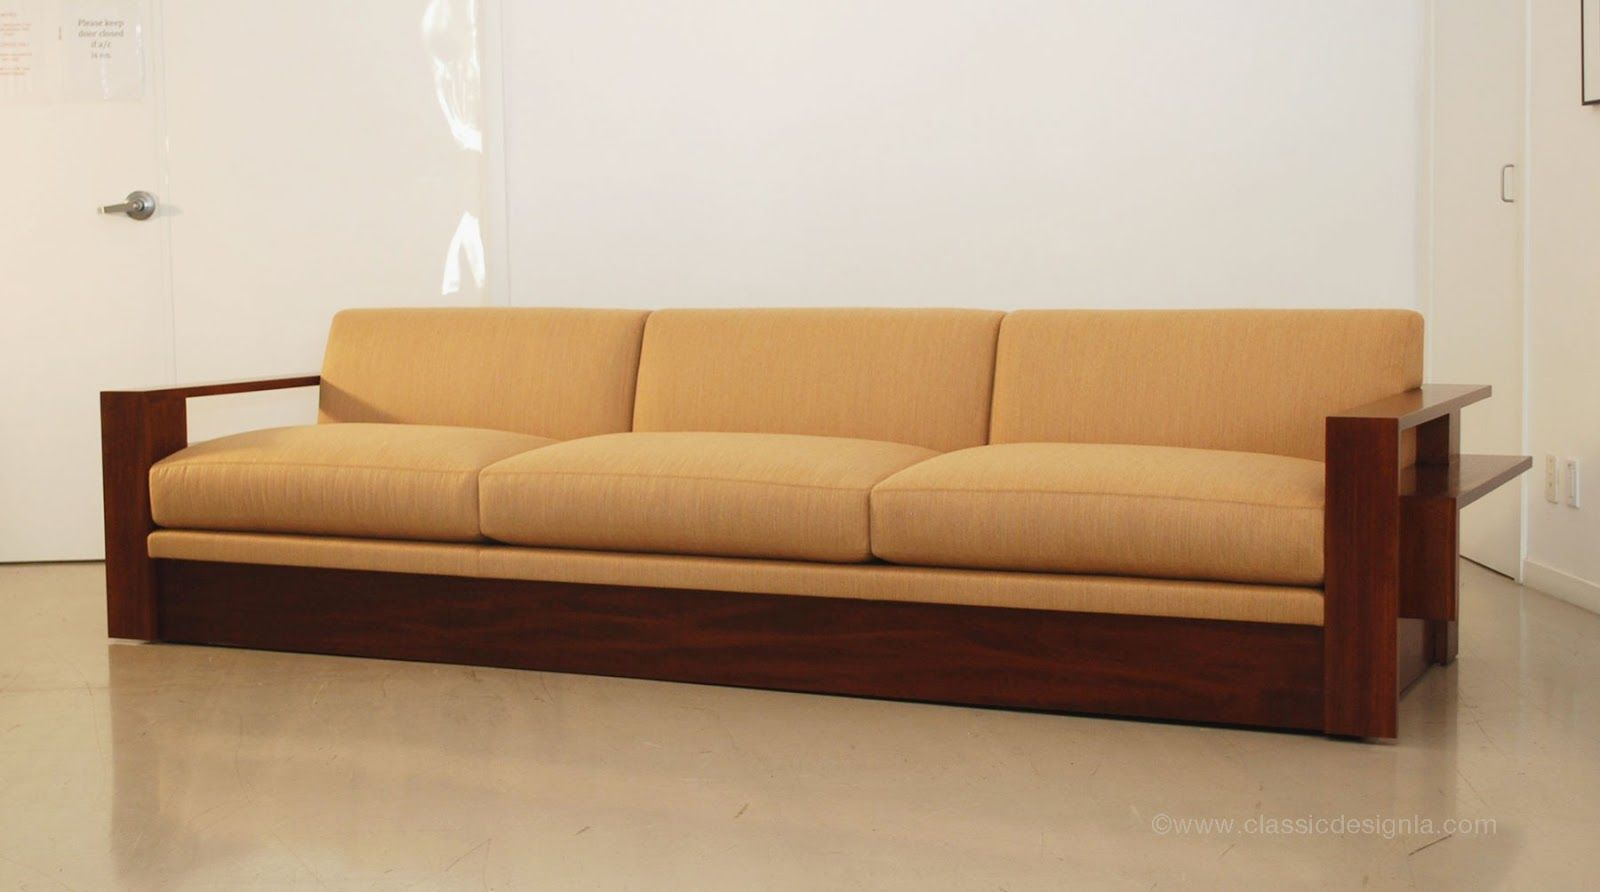 How To Make A Wooden Sofa Frame Sofa Plywood Inspiration